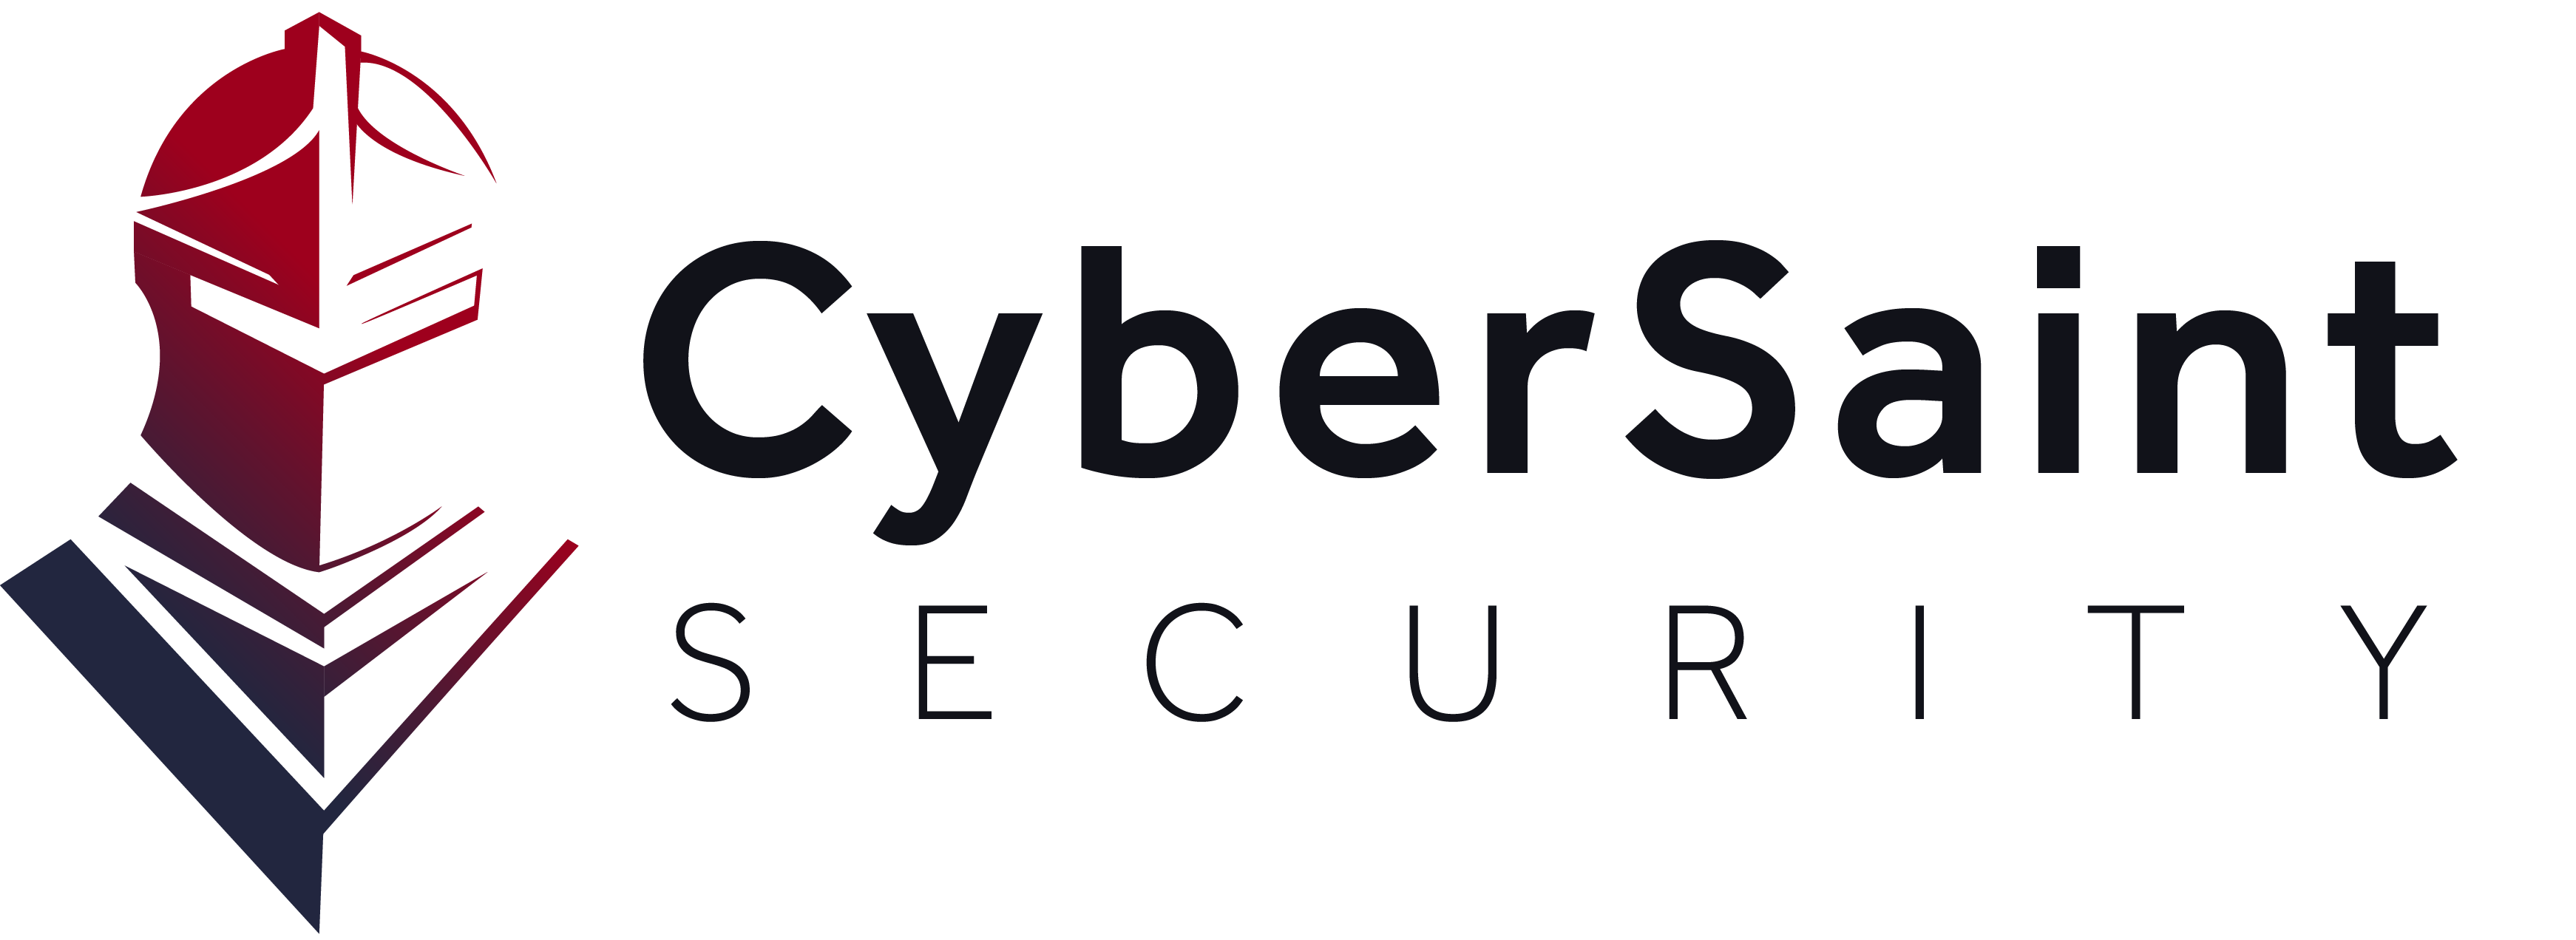 CyberSaint Security logo